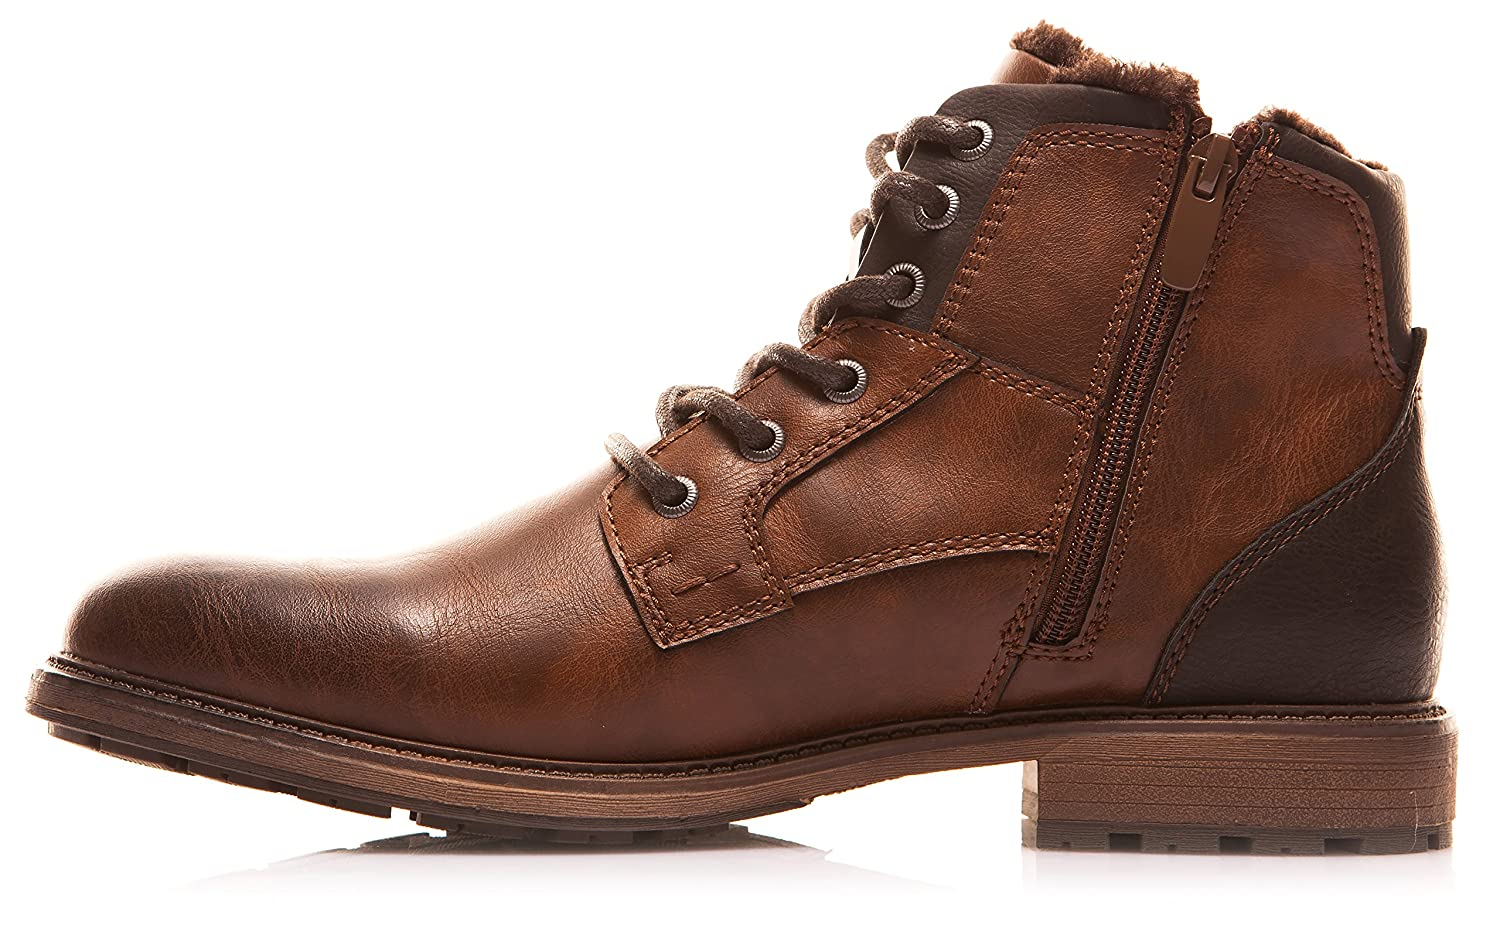 XPER Mens Brown Fashion Lace up Motorcycle Combat Winter Ankle Boots